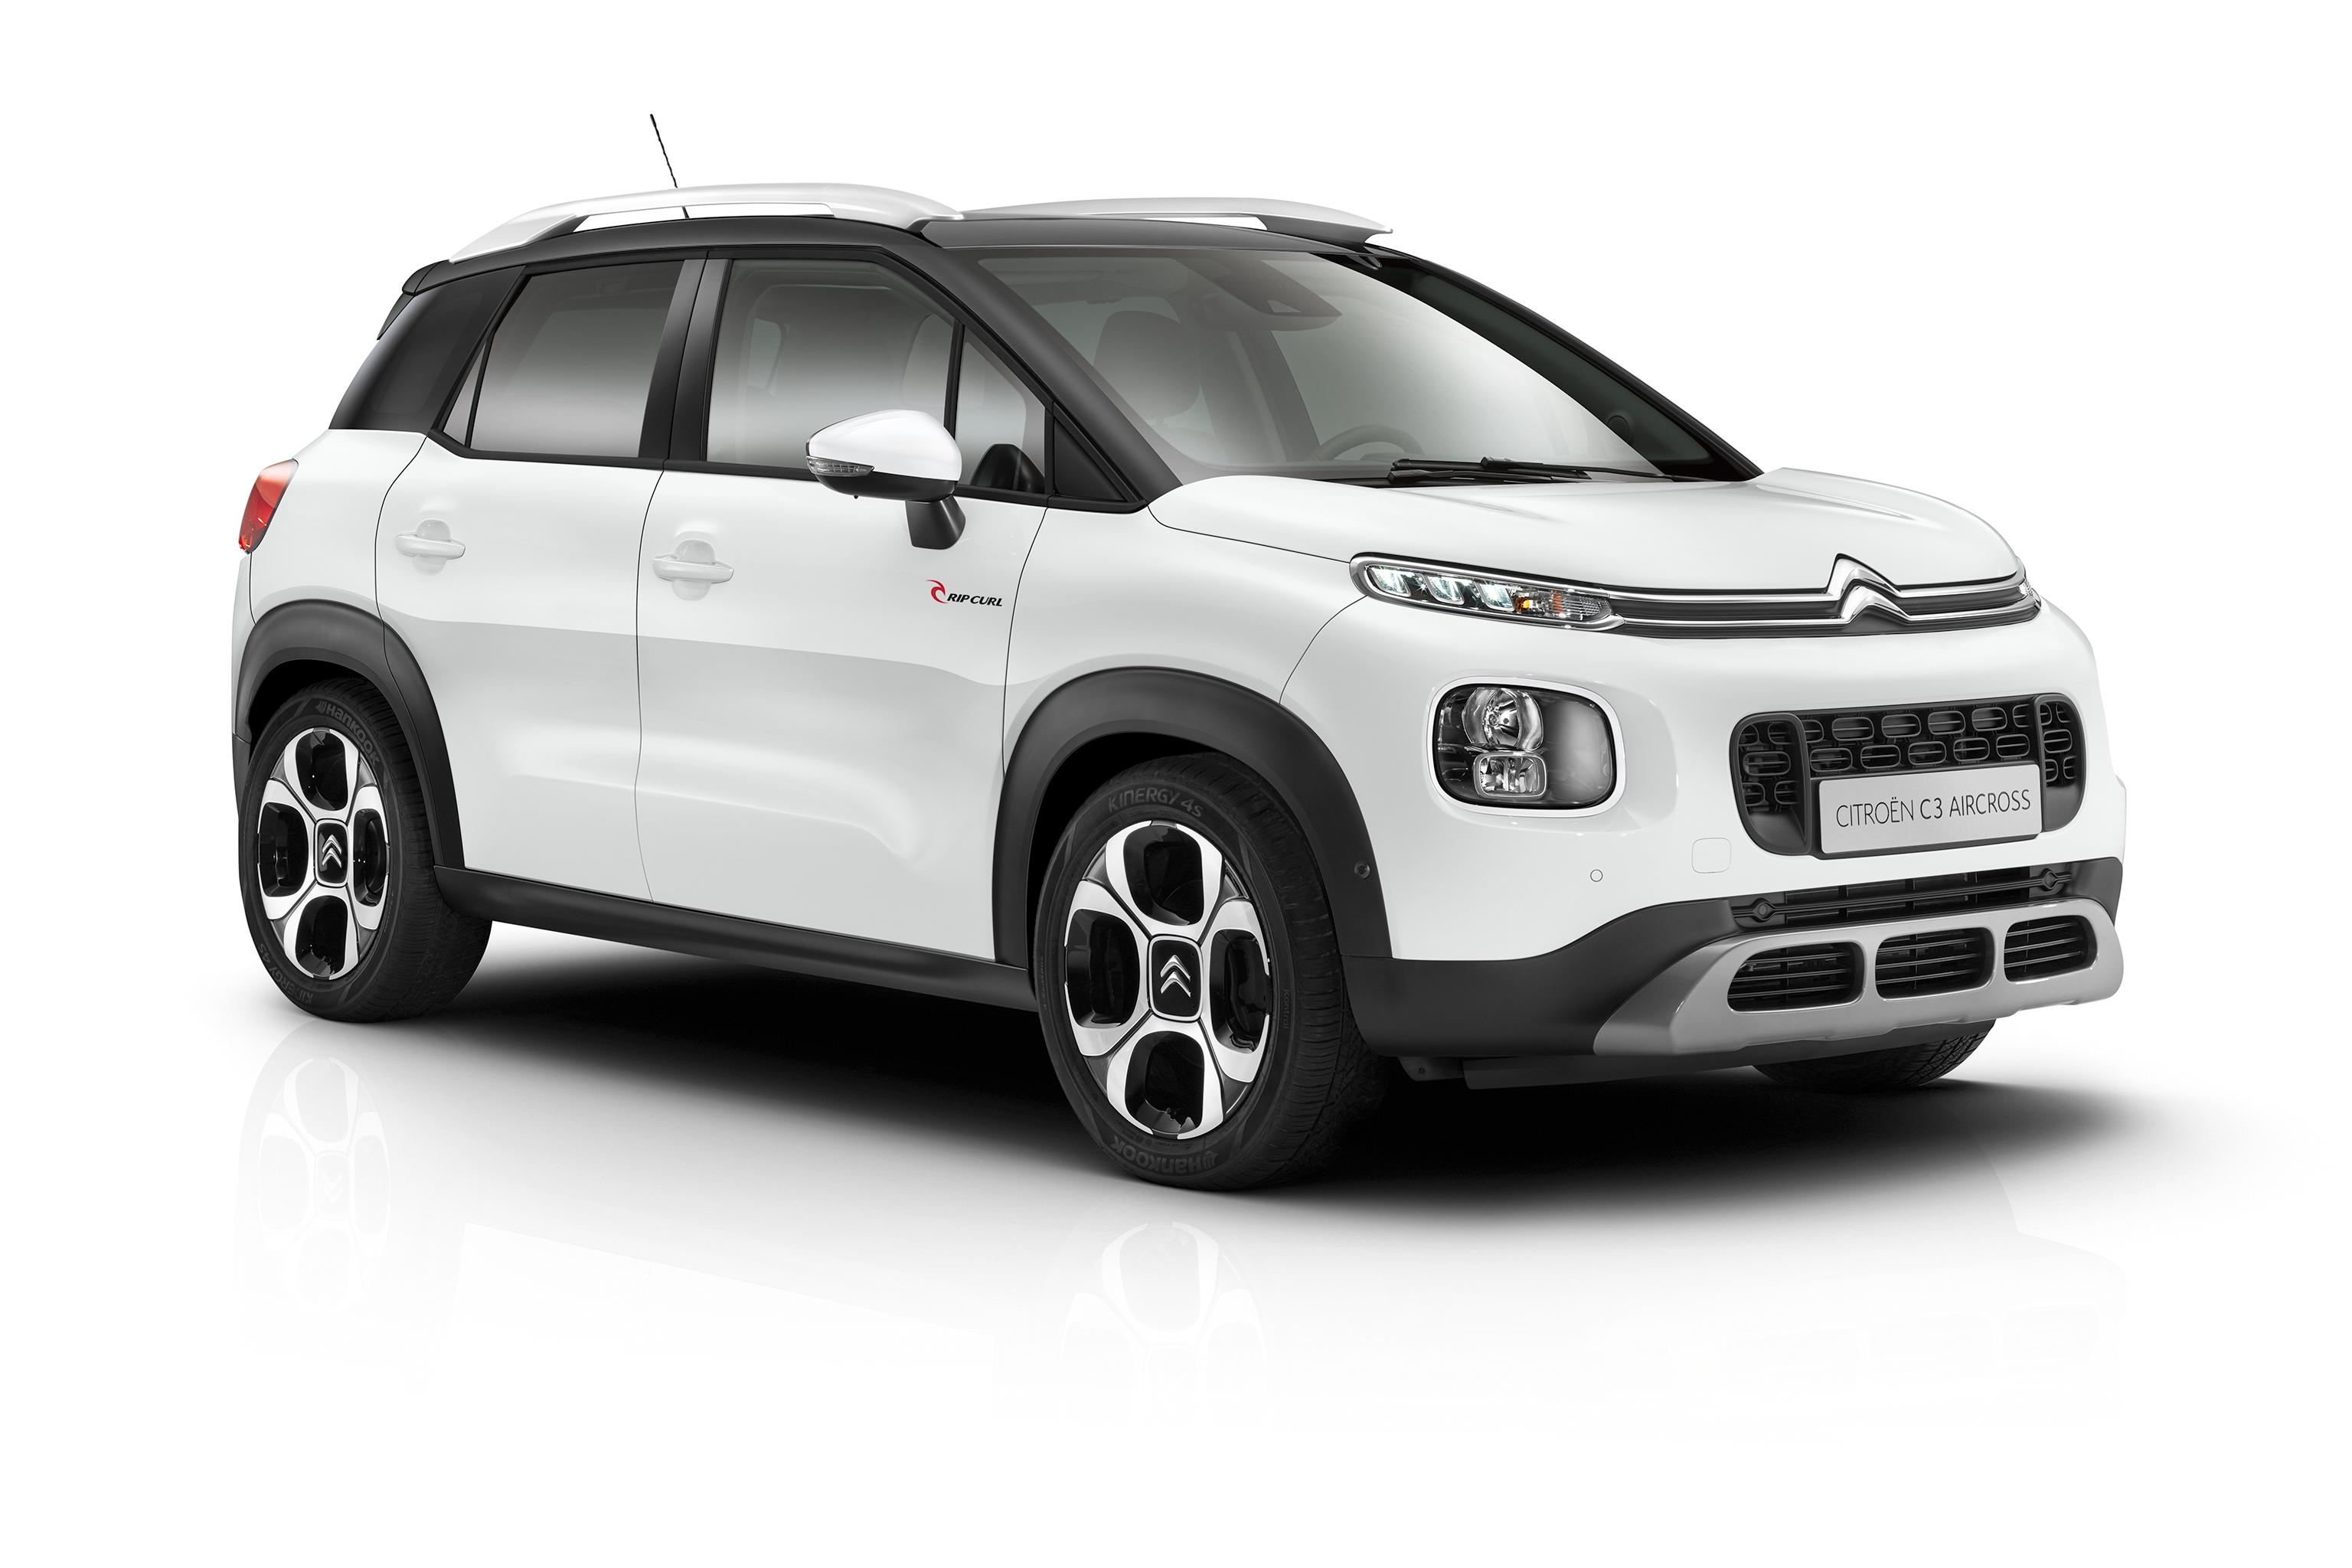 citroen c3 aircross pokorio tr i te foto. Black Bedroom Furniture Sets. Home Design Ideas